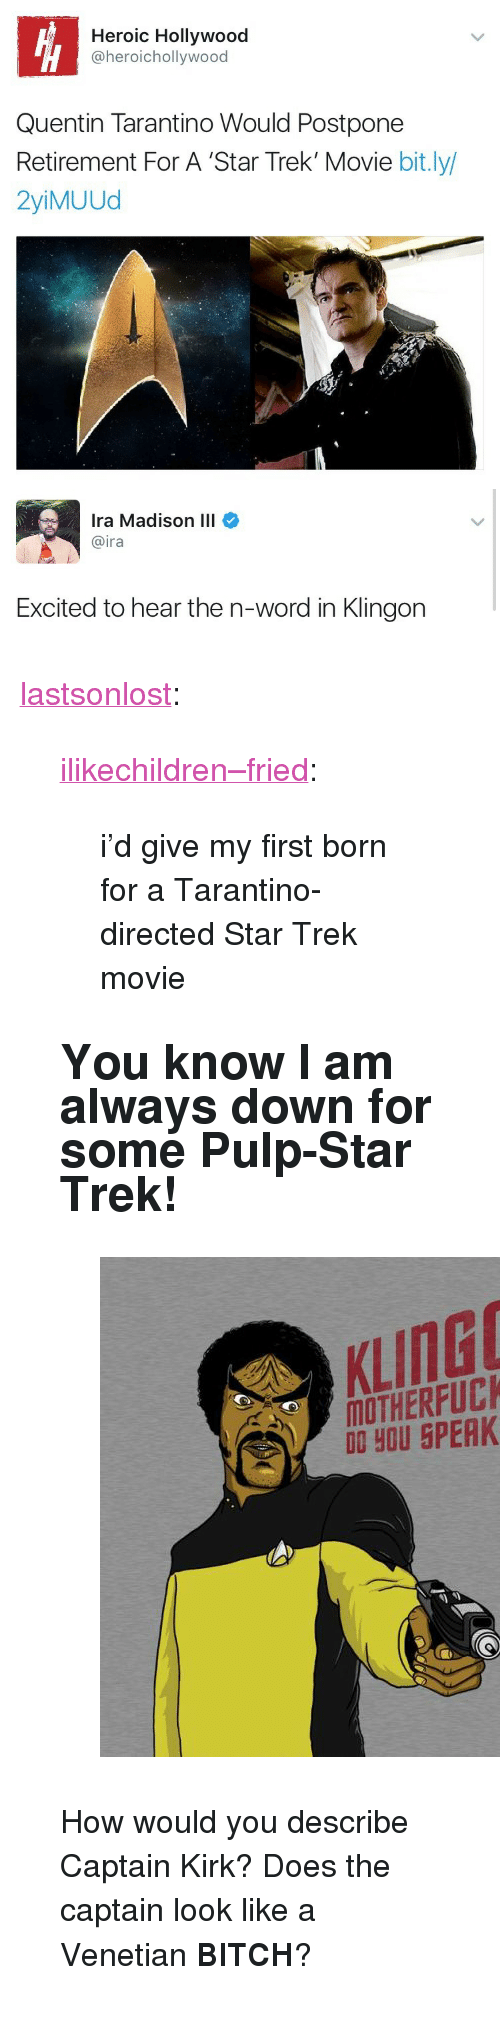 """Bitch, Captain Kirk, and Star Trek: Heroic Hollywood  @heroichollywood  Quentin Tarantino Would Postpone  Retirement For A 'Star Trek' Movie bit.ly/  2yiMUUd   Ira Madison III  @ira  Excited to hear the n-word in Klingon <p><a href=""""http://lastsonlost.tumblr.com/post/165661245992/ilikechildrenfried-id-give-my-first-born-for"""" class=""""tumblr_blog"""">lastsonlost</a>:</p>  <blockquote><p><a href=""""http://ilikechildren--fried.tumblr.com/post/165659998186/id-give-my-first-born-for-a-tarantino-directed"""" class=""""tumblr_blog"""">ilikechildren–fried</a>:</p>  <blockquote><p>i'd give my first born for a Tarantino-directed Star Trek movie</p></blockquote>  <h2><b>You know I am always down for some Pulp-Star Trek!</b></h2><figure class=""""tmblr-full"""" data-orig-height=""""630"""" data-orig-width=""""630""""><img src=""""https://78.media.tumblr.com/21f41dc8581005ea417b5b135794d064/tumblr_inline_owr0mdnW5K1sp5650_500.jpg"""" data-orig-height=""""630"""" data-orig-width=""""630""""/></figure><p>How would you describe Captain Kirk?                  Does the captain look like a Venetian <b>BITCH</b>?</p></blockquote>"""